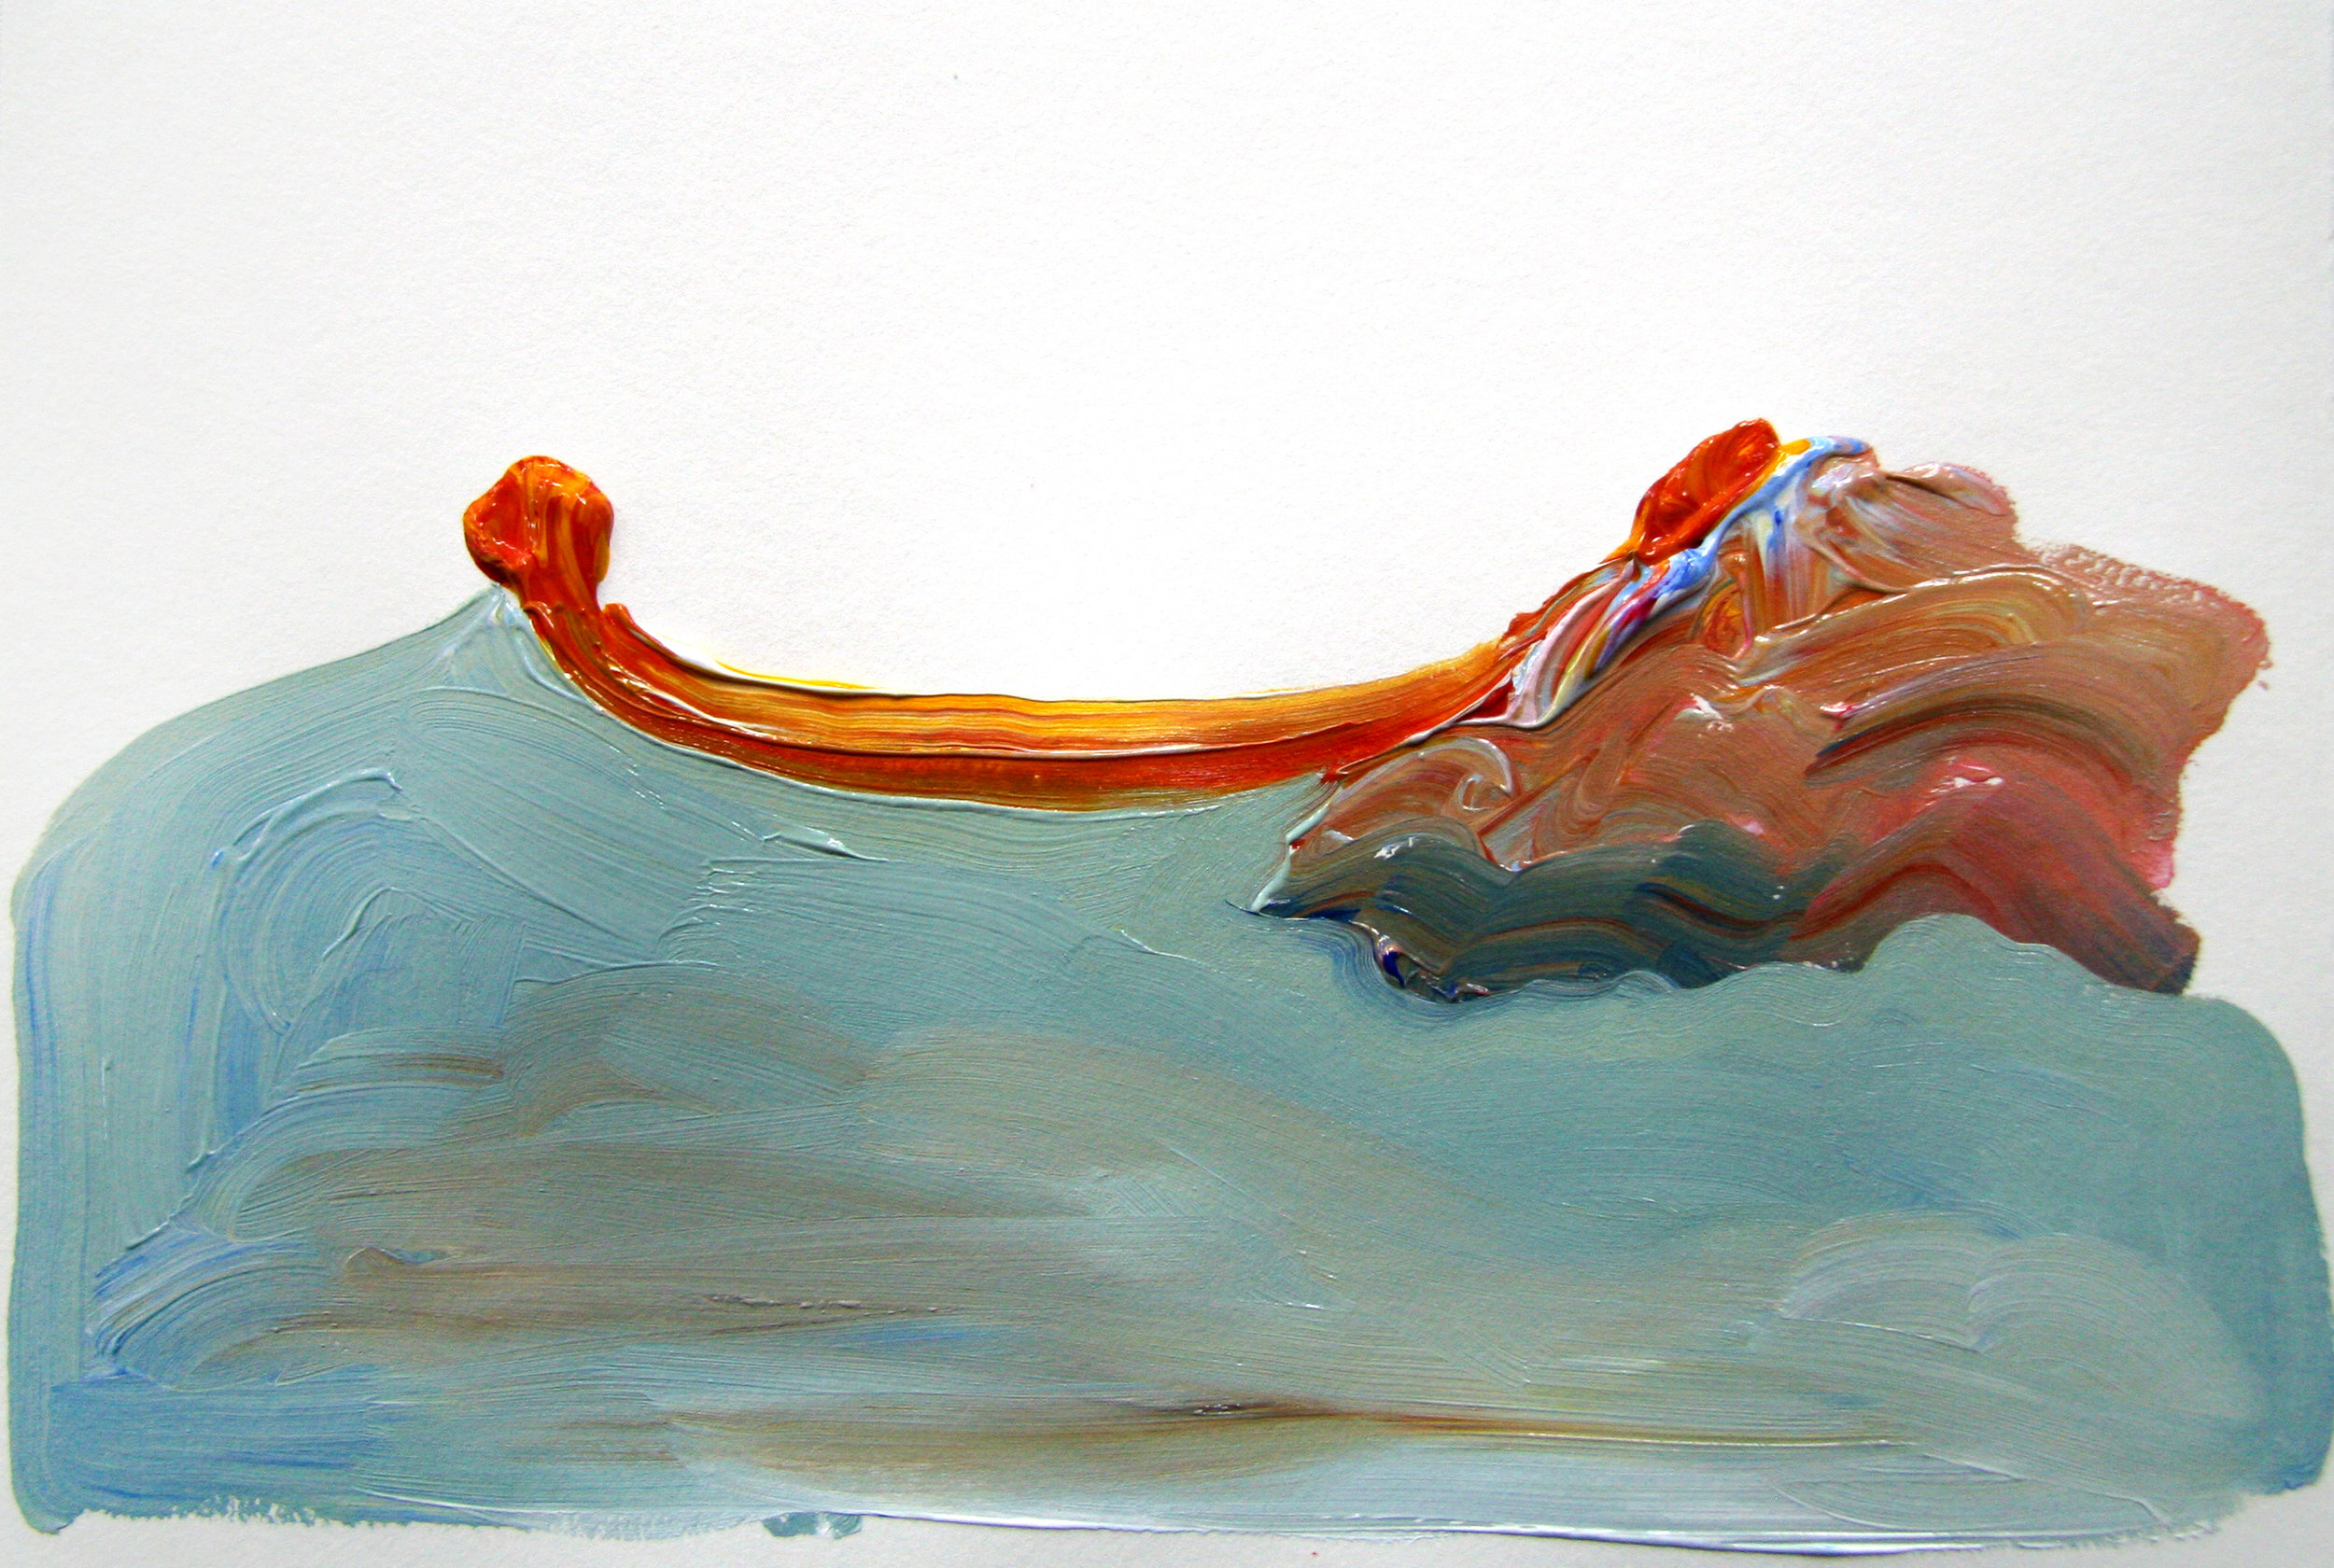 Boat on the Ocean , 2013 Acrylic on paper 7.5H x 11W inches